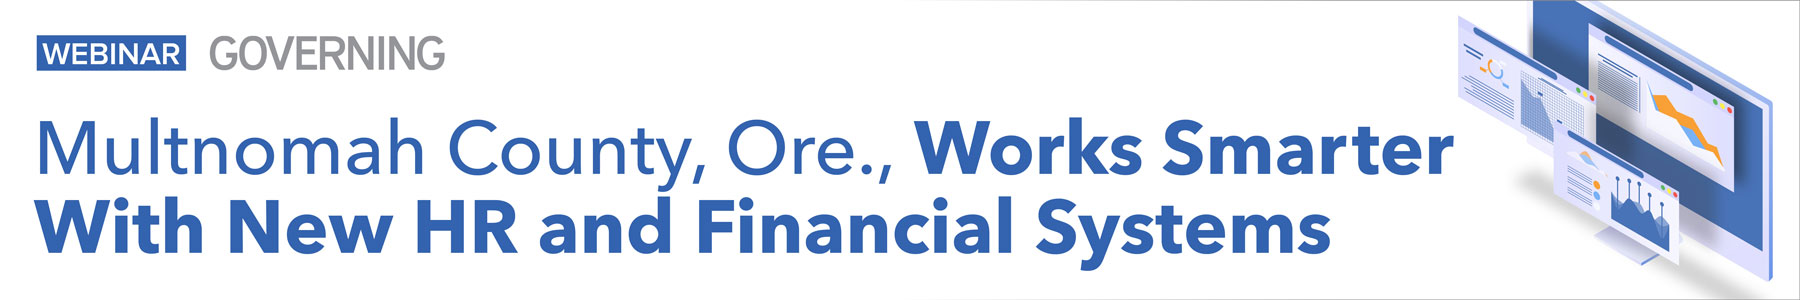 Multnomah County, Ore., Works Smarter With New HR and Financial Systems